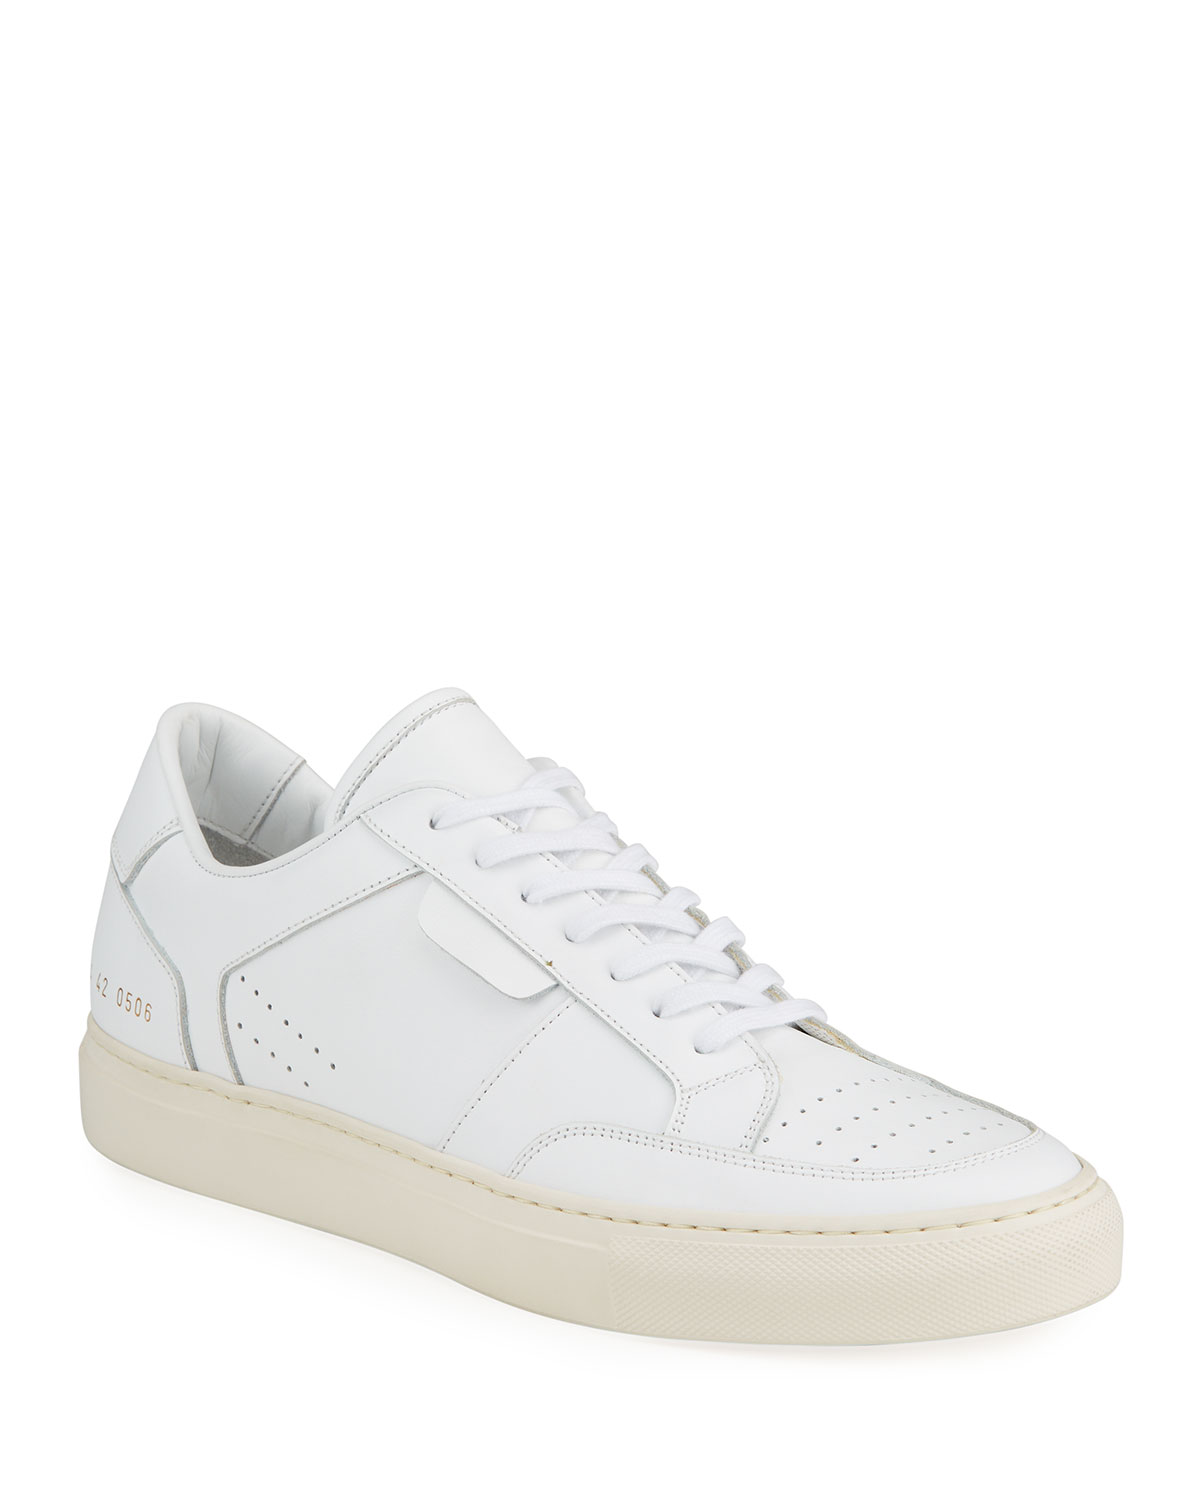 Common Projects Leathers MEN'S ZEUS PROTOTYPE PERFORATED LOW-TOP SNEAKERS